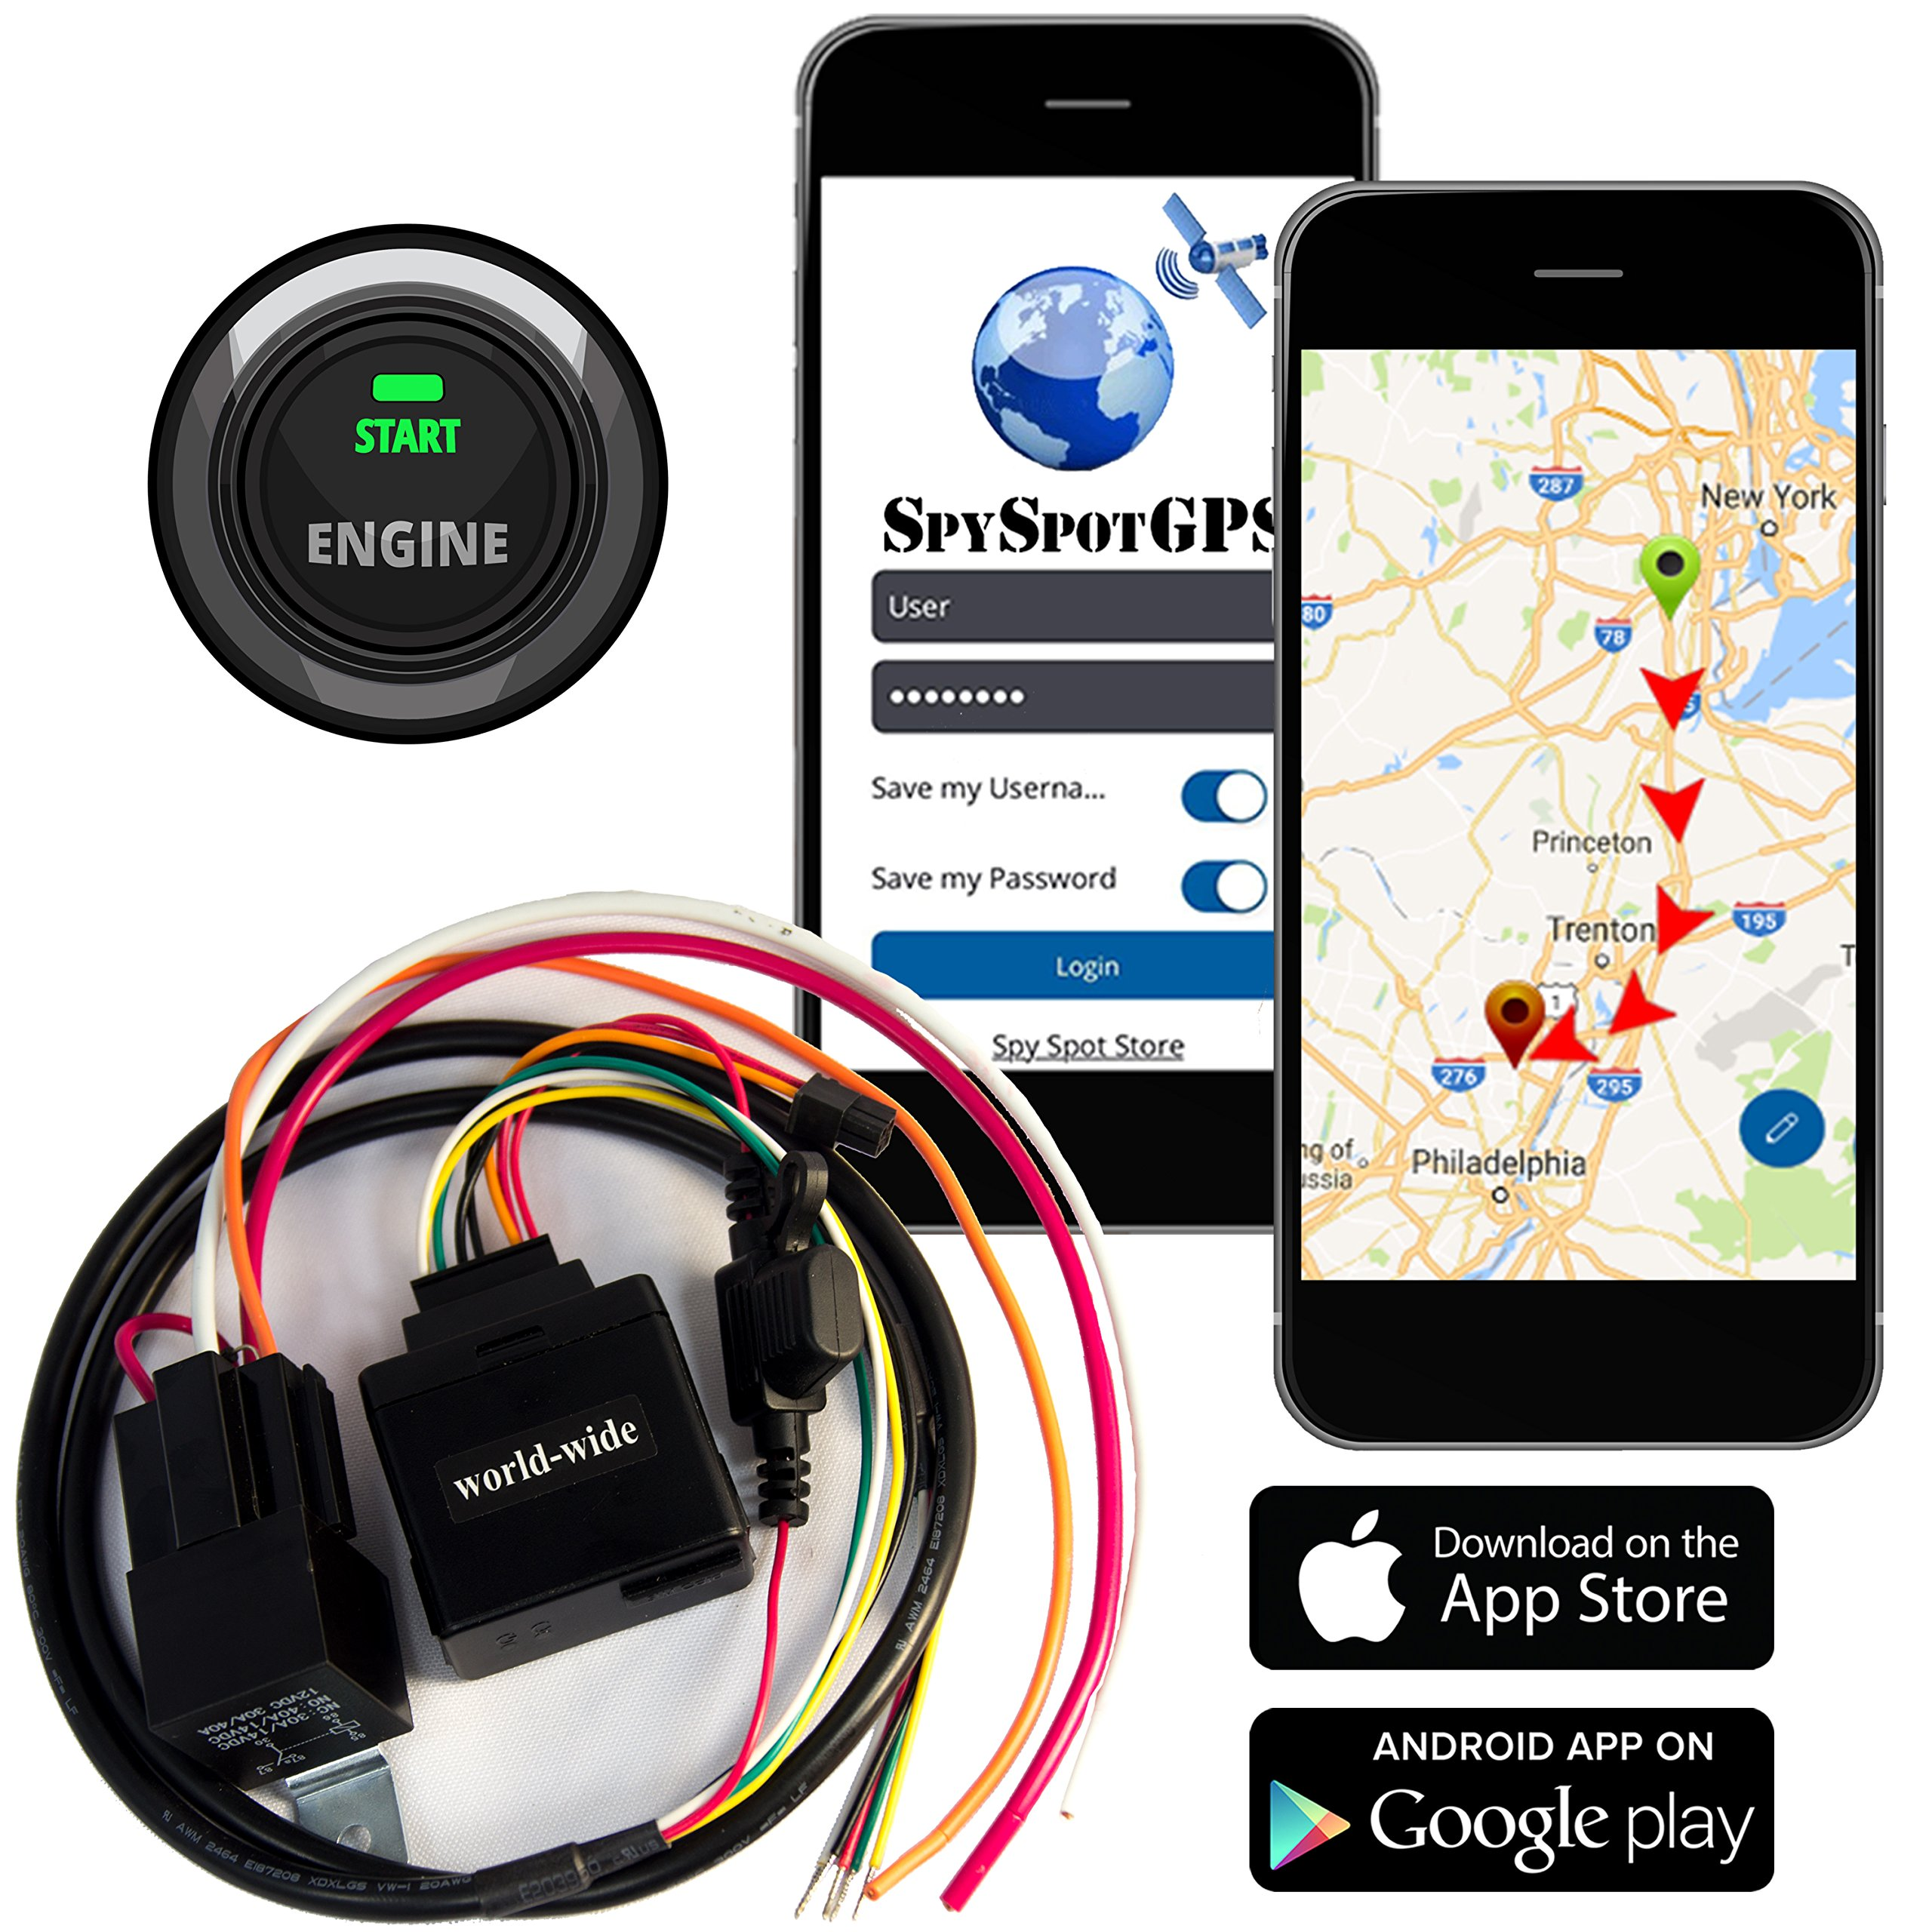 3G Hard Wire Kill Switch GPS Vehicle Tracker | Disable Any Vehicle Ignition - Remote Starter | Advance Satellite Real Time Fleet Tracking / Teen Driver Monitoring Alerts by Spy Spot